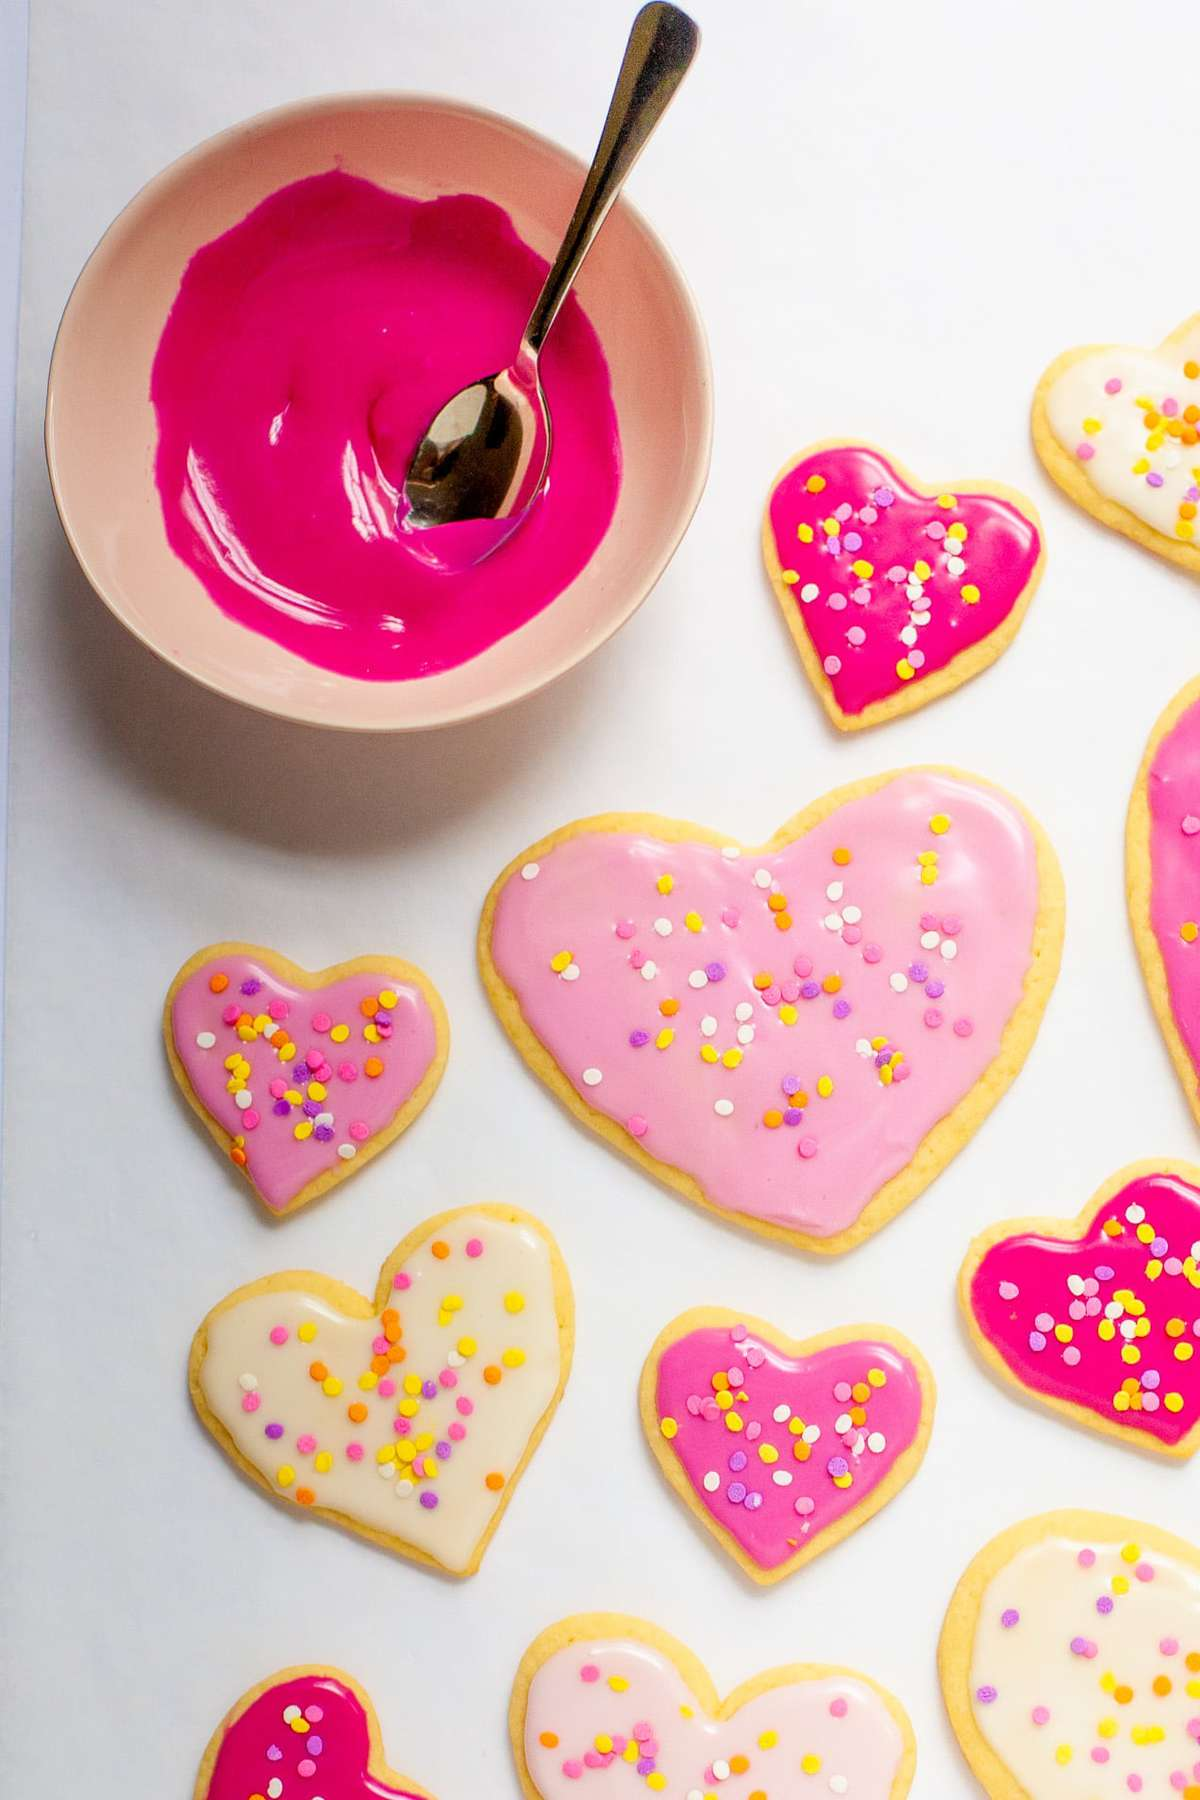 A pink bowl of sugar cookie icing sits next to heart-shaped cookies.